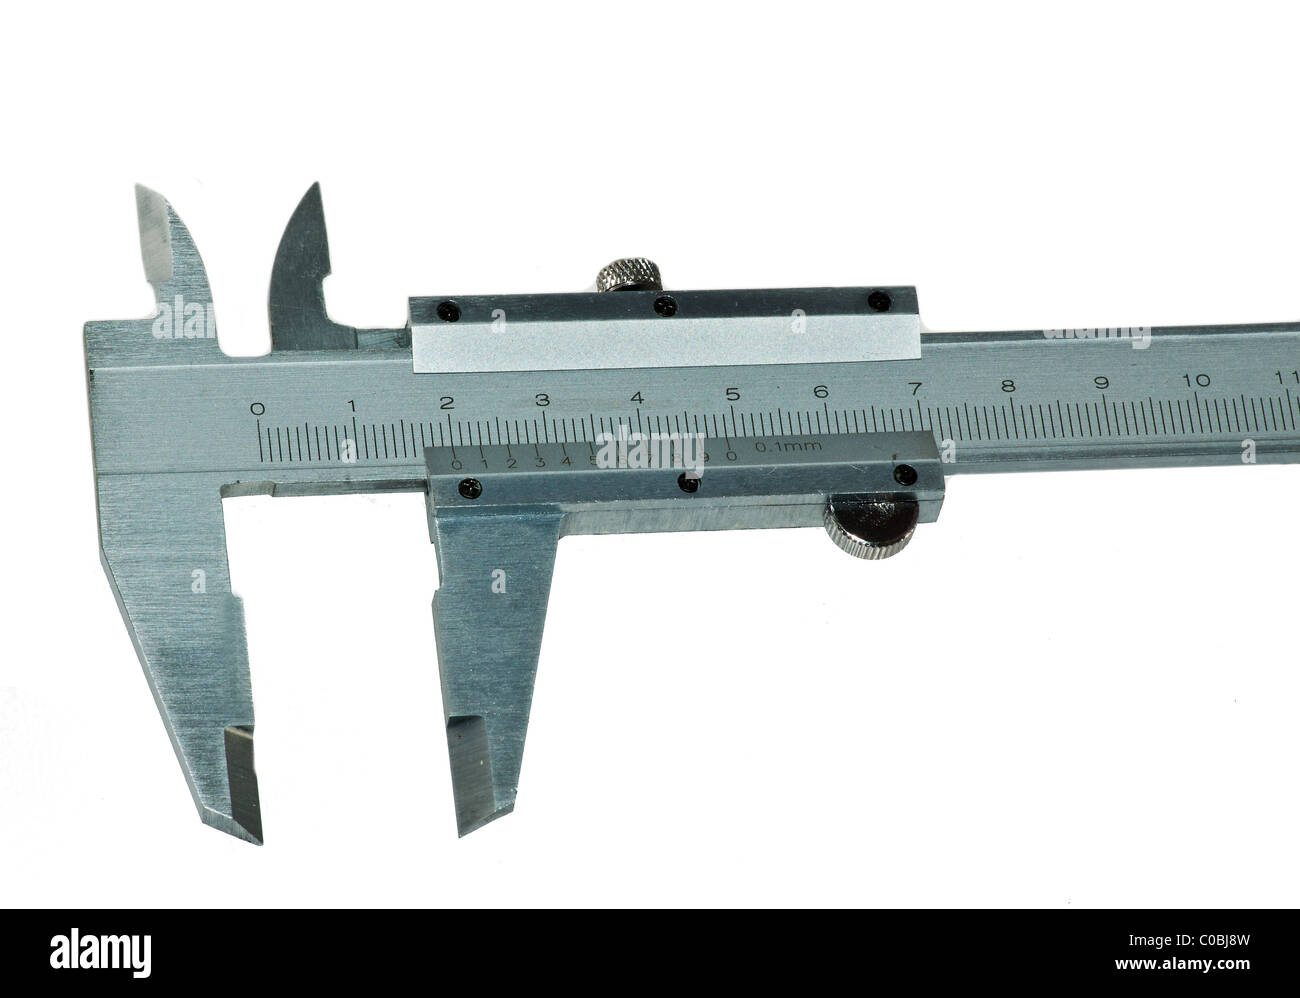 Engineering Measuring Instruments : Measuring tools used in mechanical engineering isolated